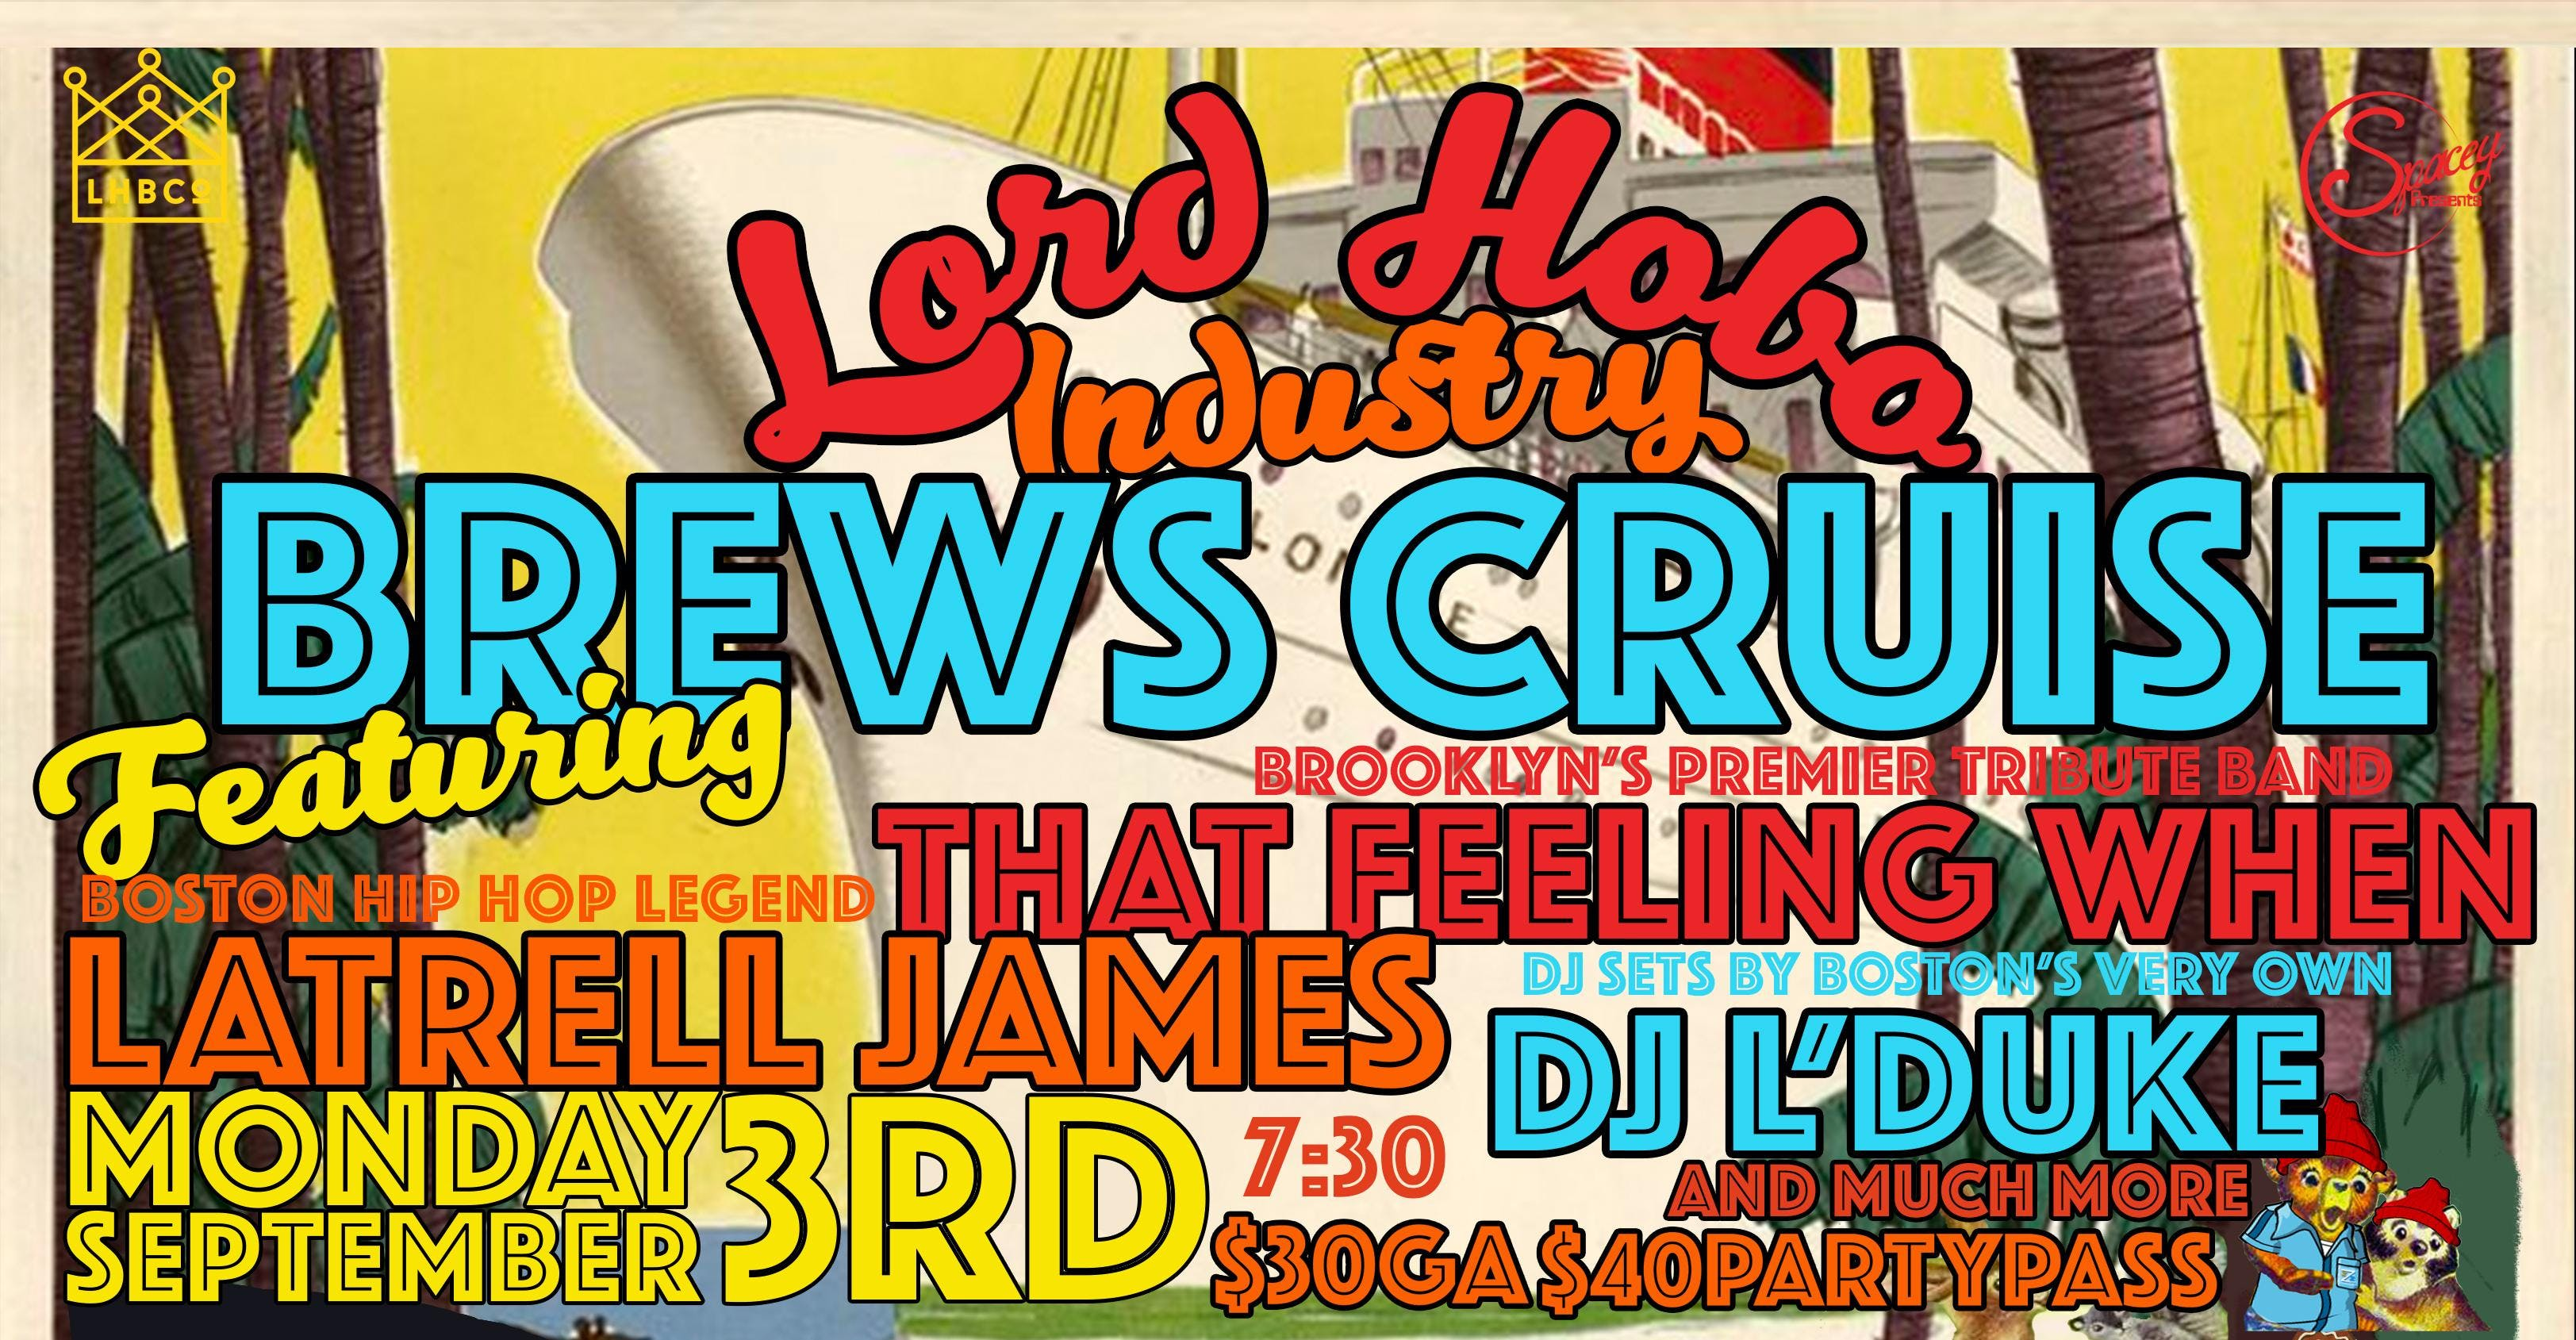 Spacey Presents: The 2nd Annual Lord Hobo Industry BrewsCruise - 3 ...